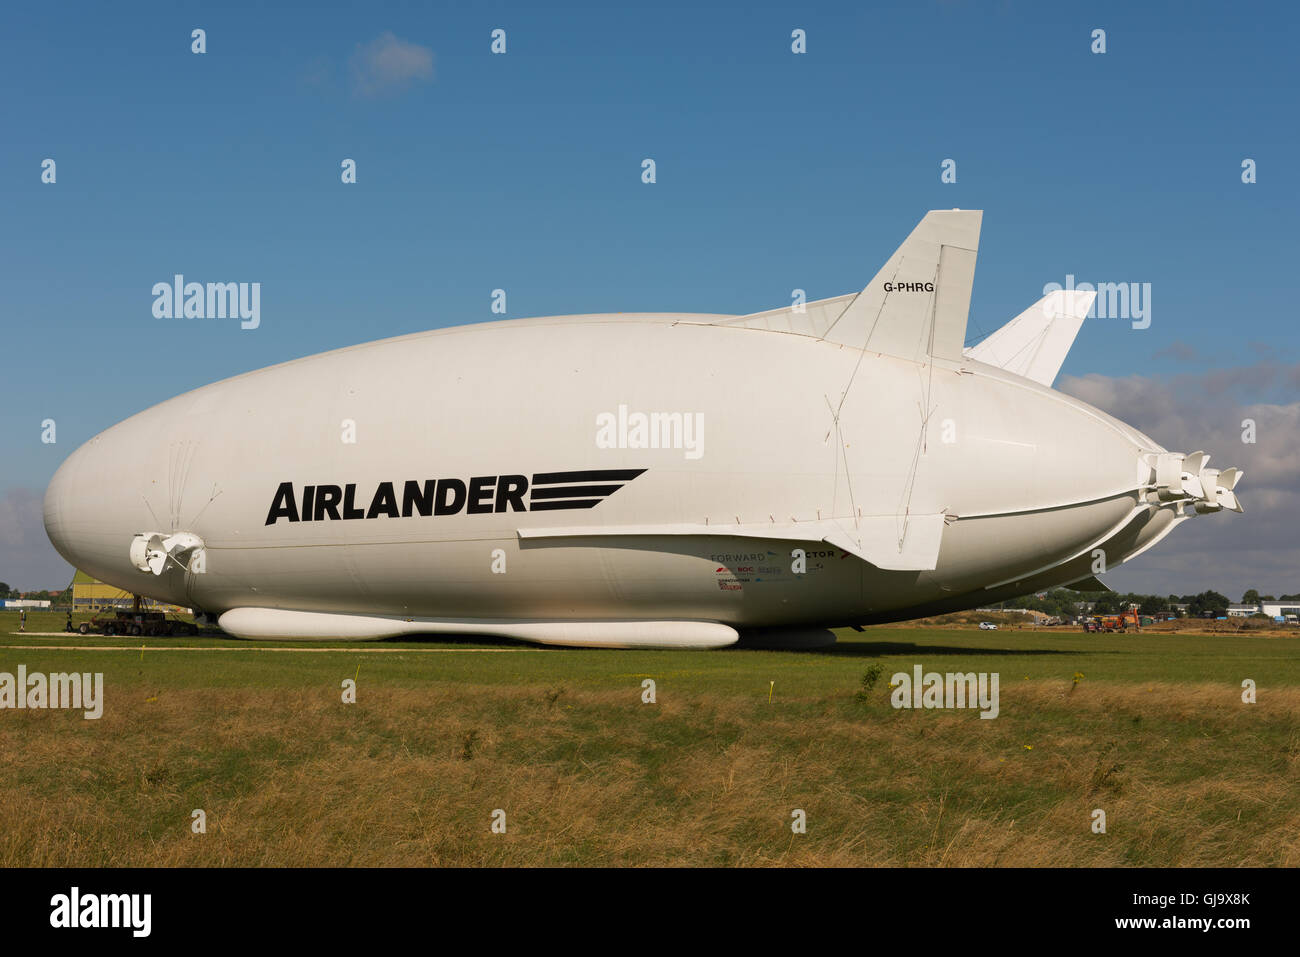 Airlander 10, world's largest aircraft at Cardington Hanagars, Bedfordshire, UK Stock Photo